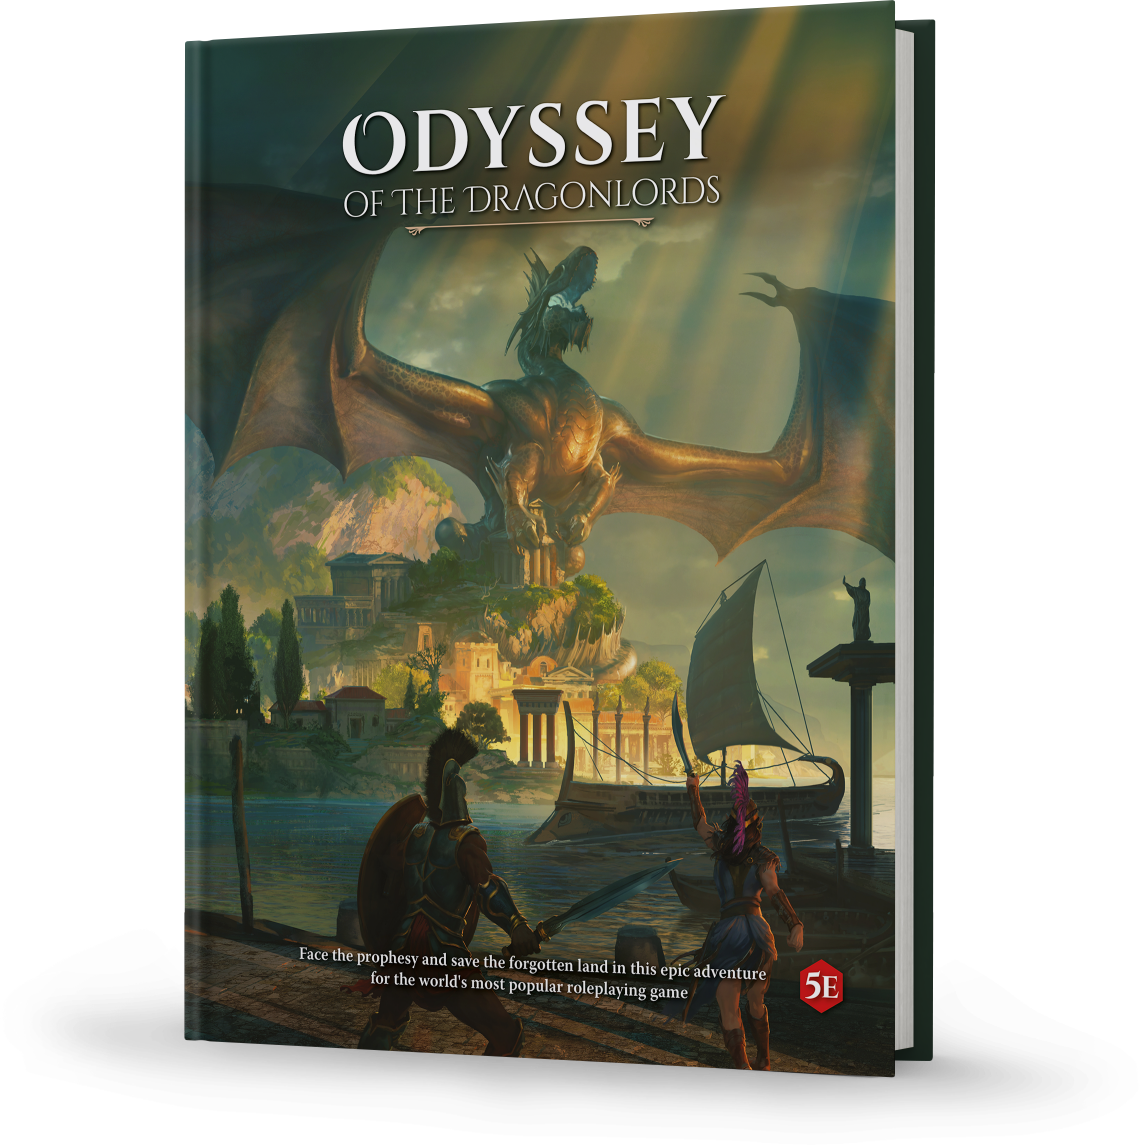 Odyssey of the Dragonlords - Campaign Guide | Murphy's Vault